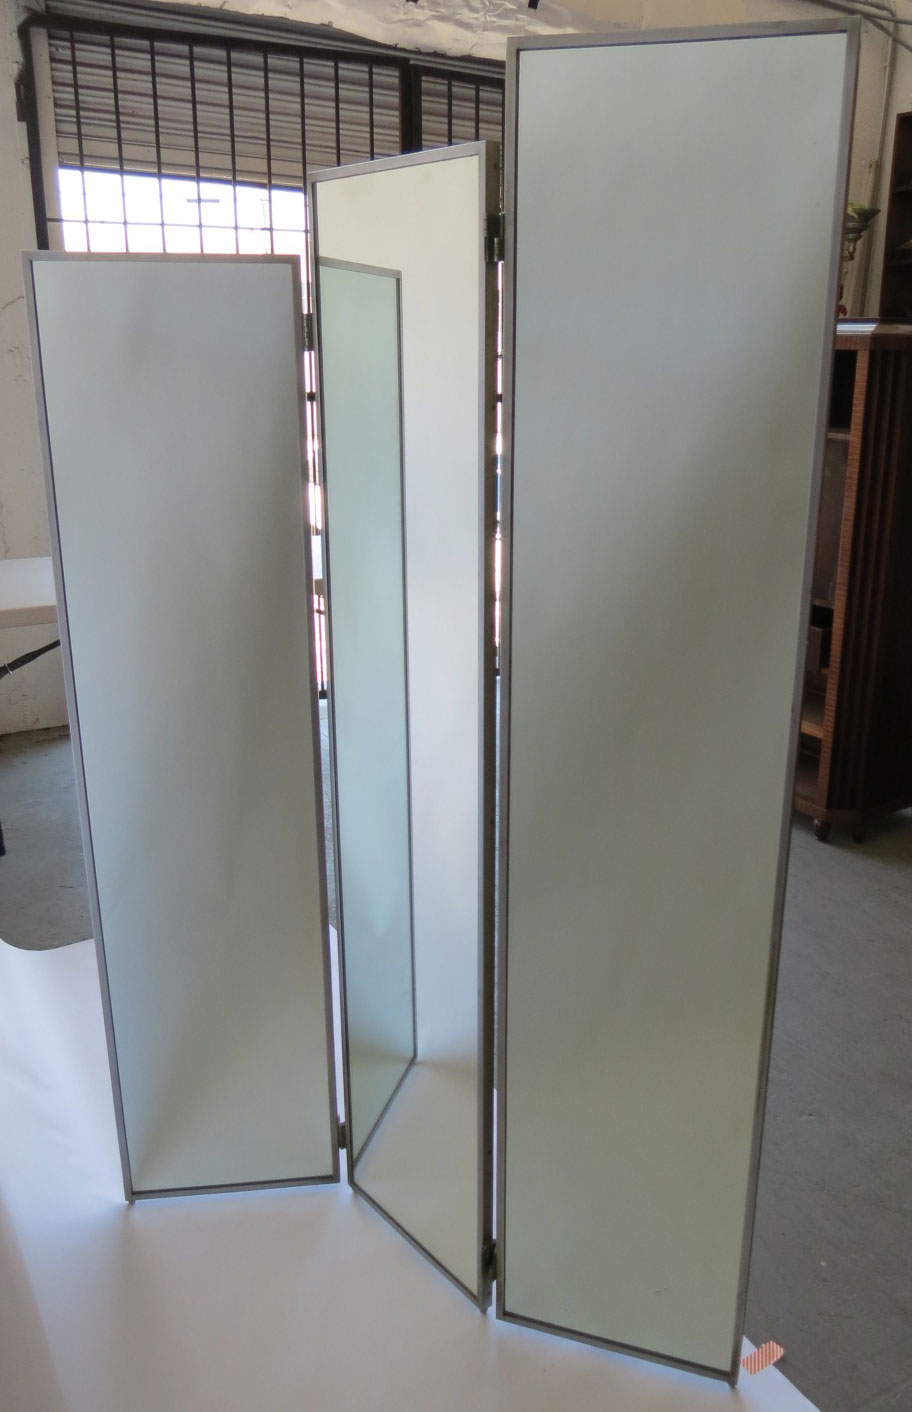 American art deco mirror skyscraper folding screen modernism - Mirror screen ...